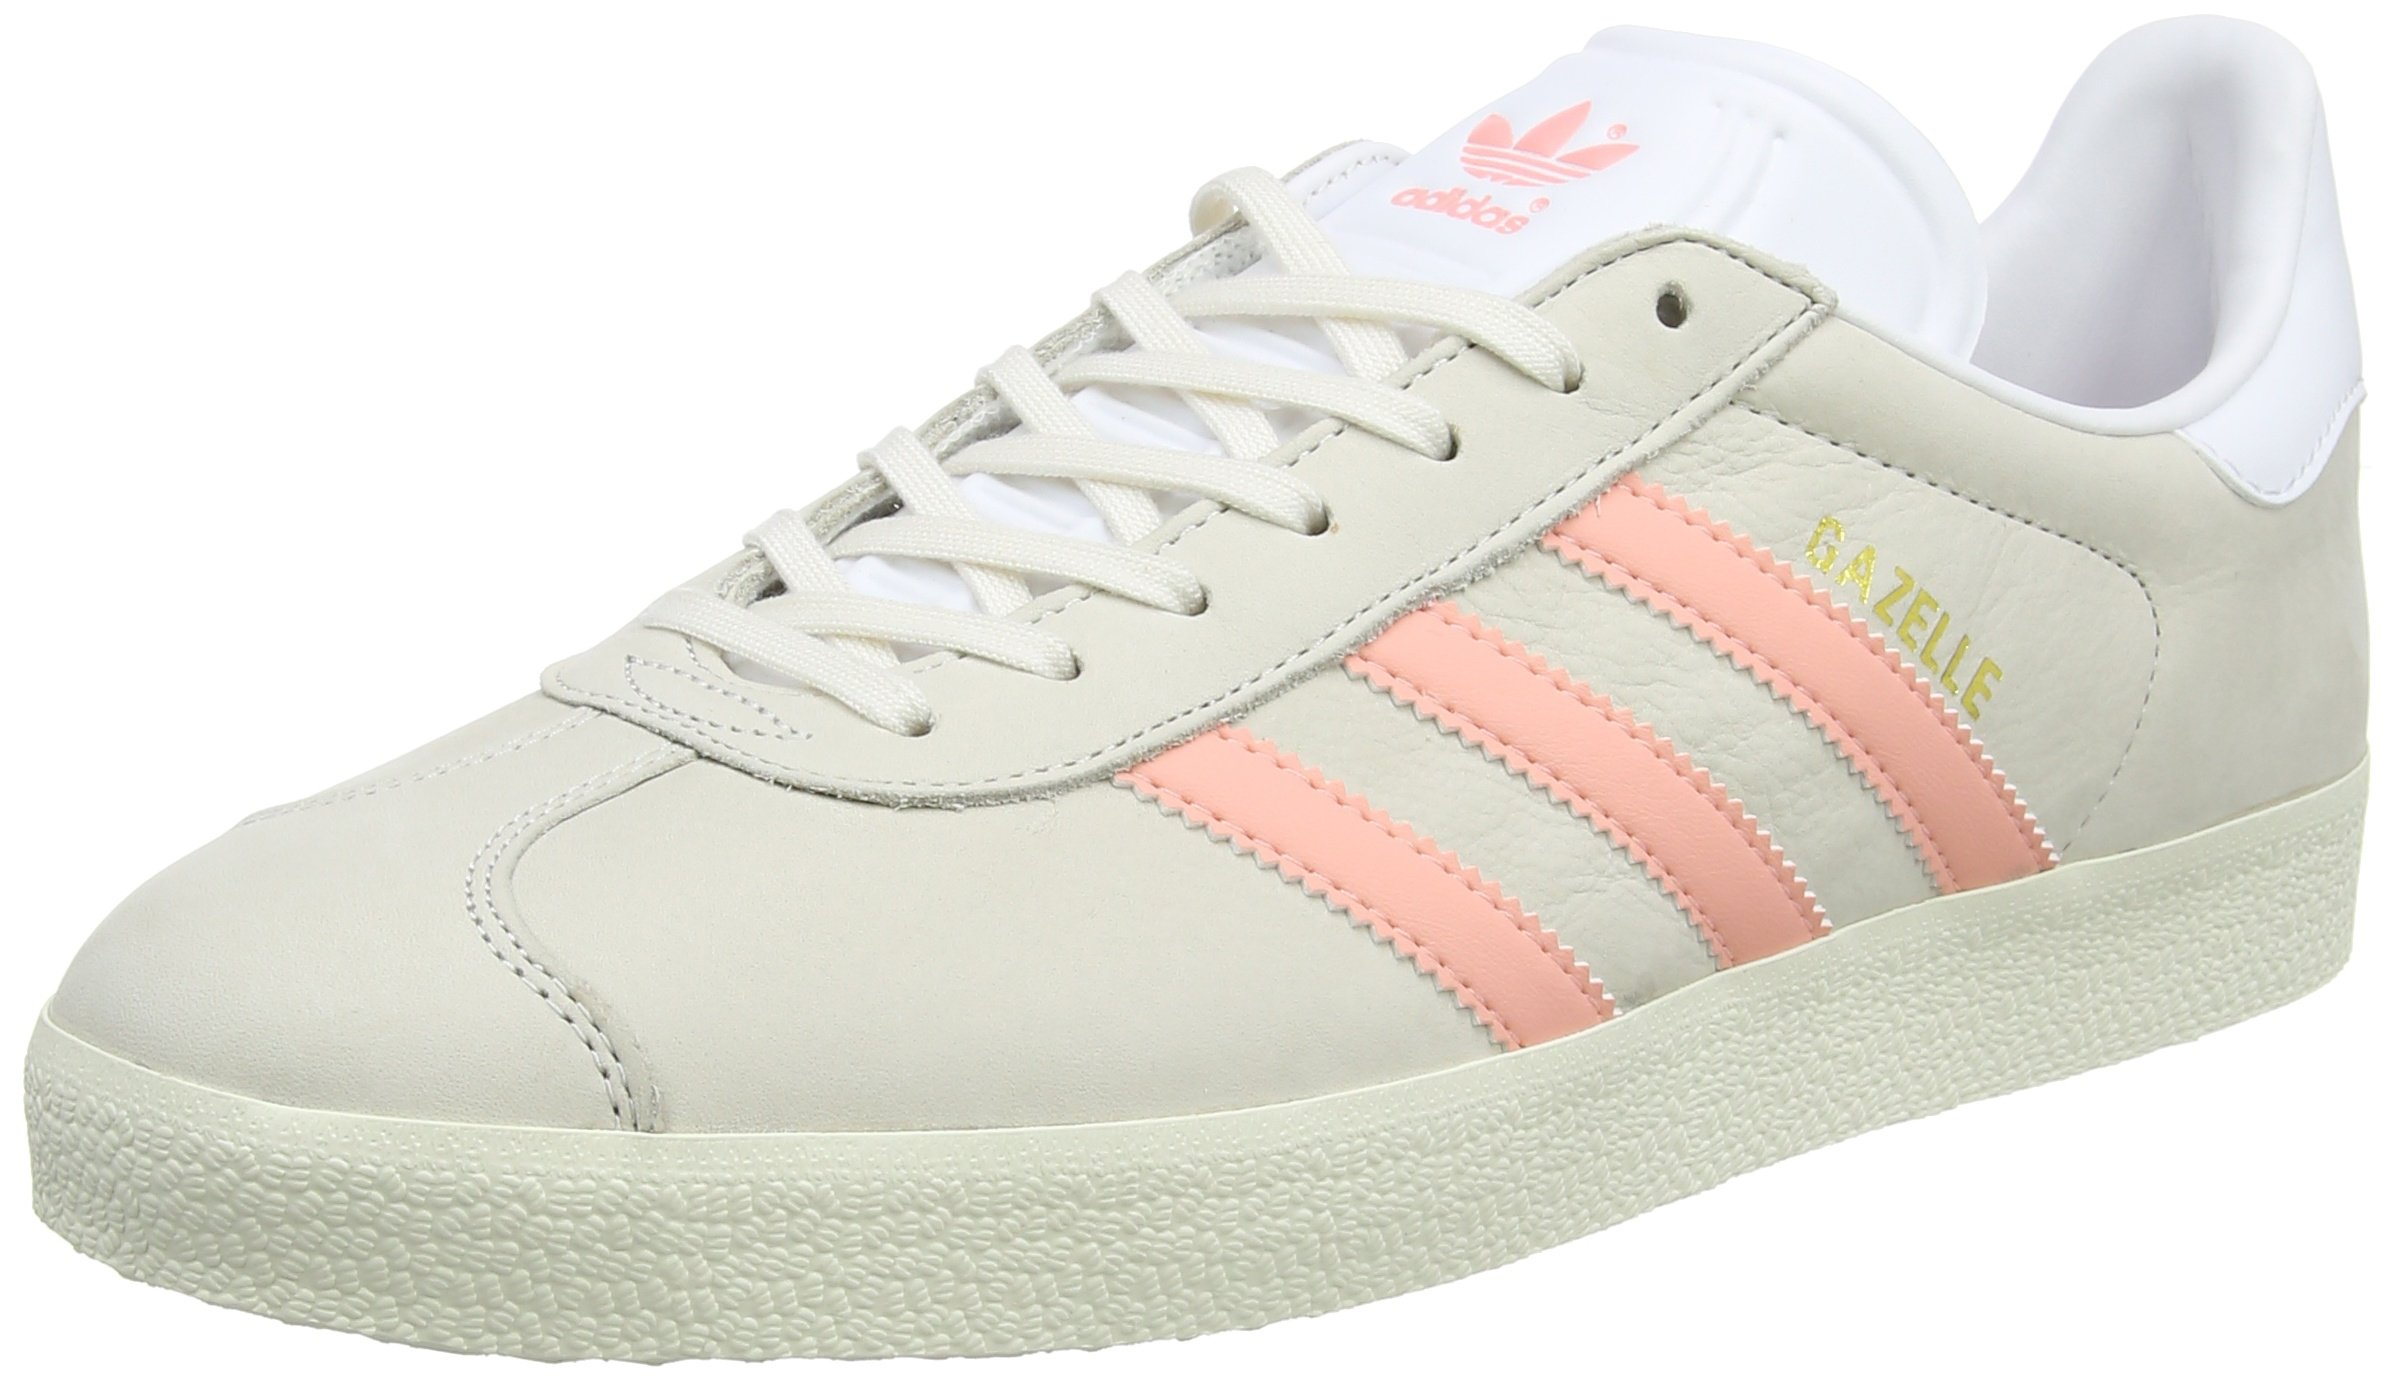 adidas Originals Gazelle, Zapatillas Unisex Adulto, Varios Colores (Chalk White/Still Breeze/Footwear White), 36 EU